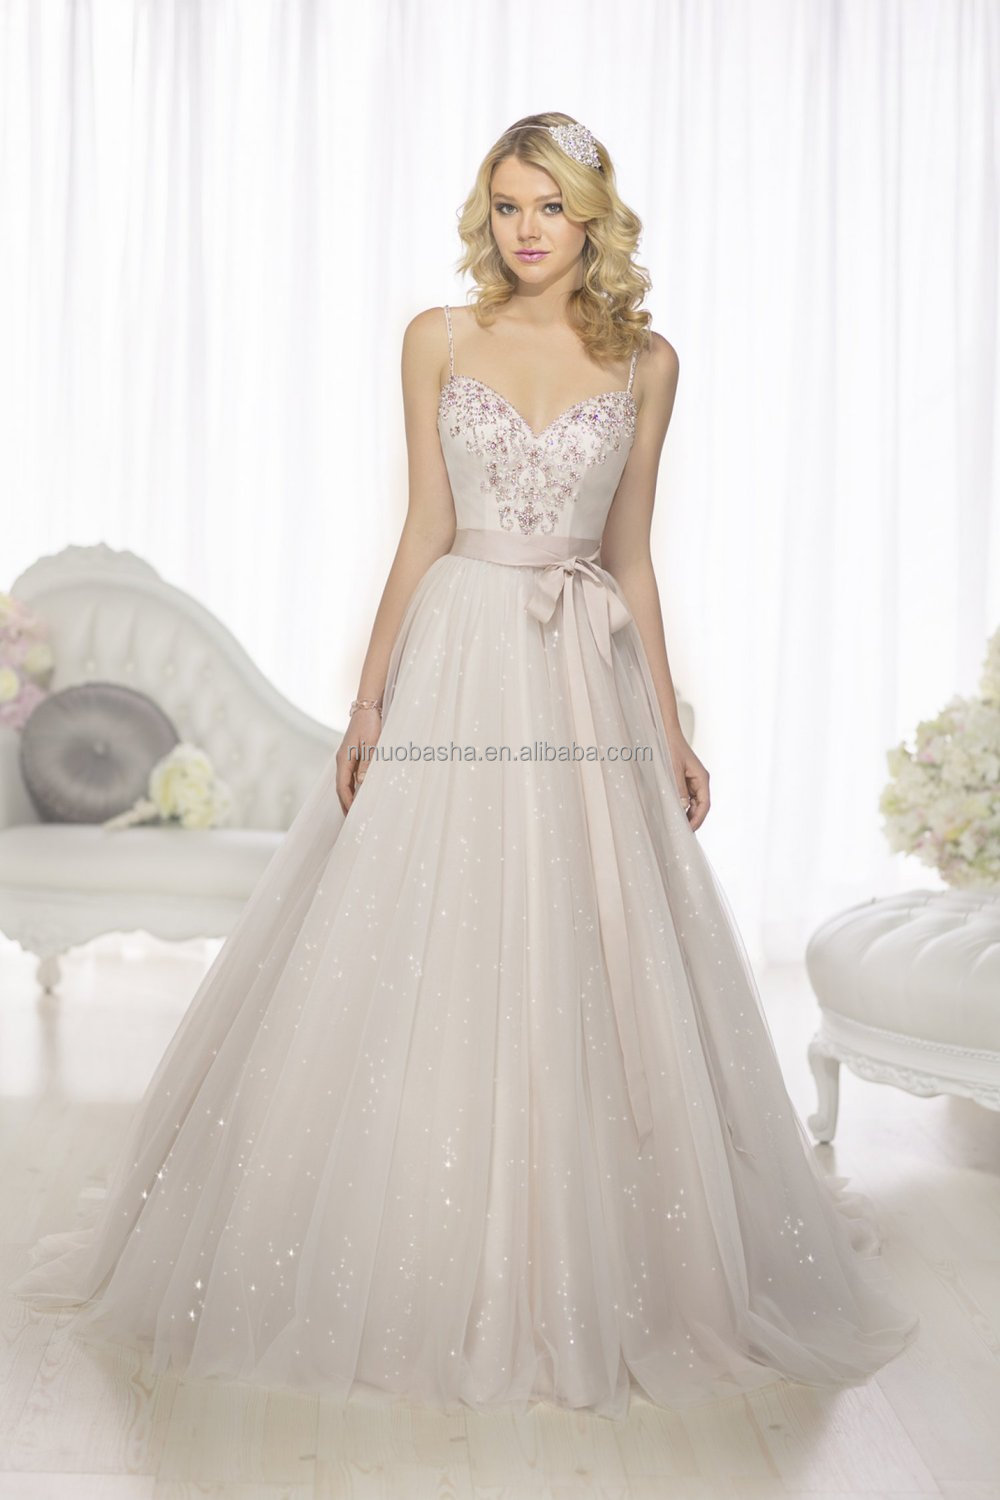 Wholesale 2015 chic a line wedding dress with sweetheart for Sweetheart wedding dress with straps